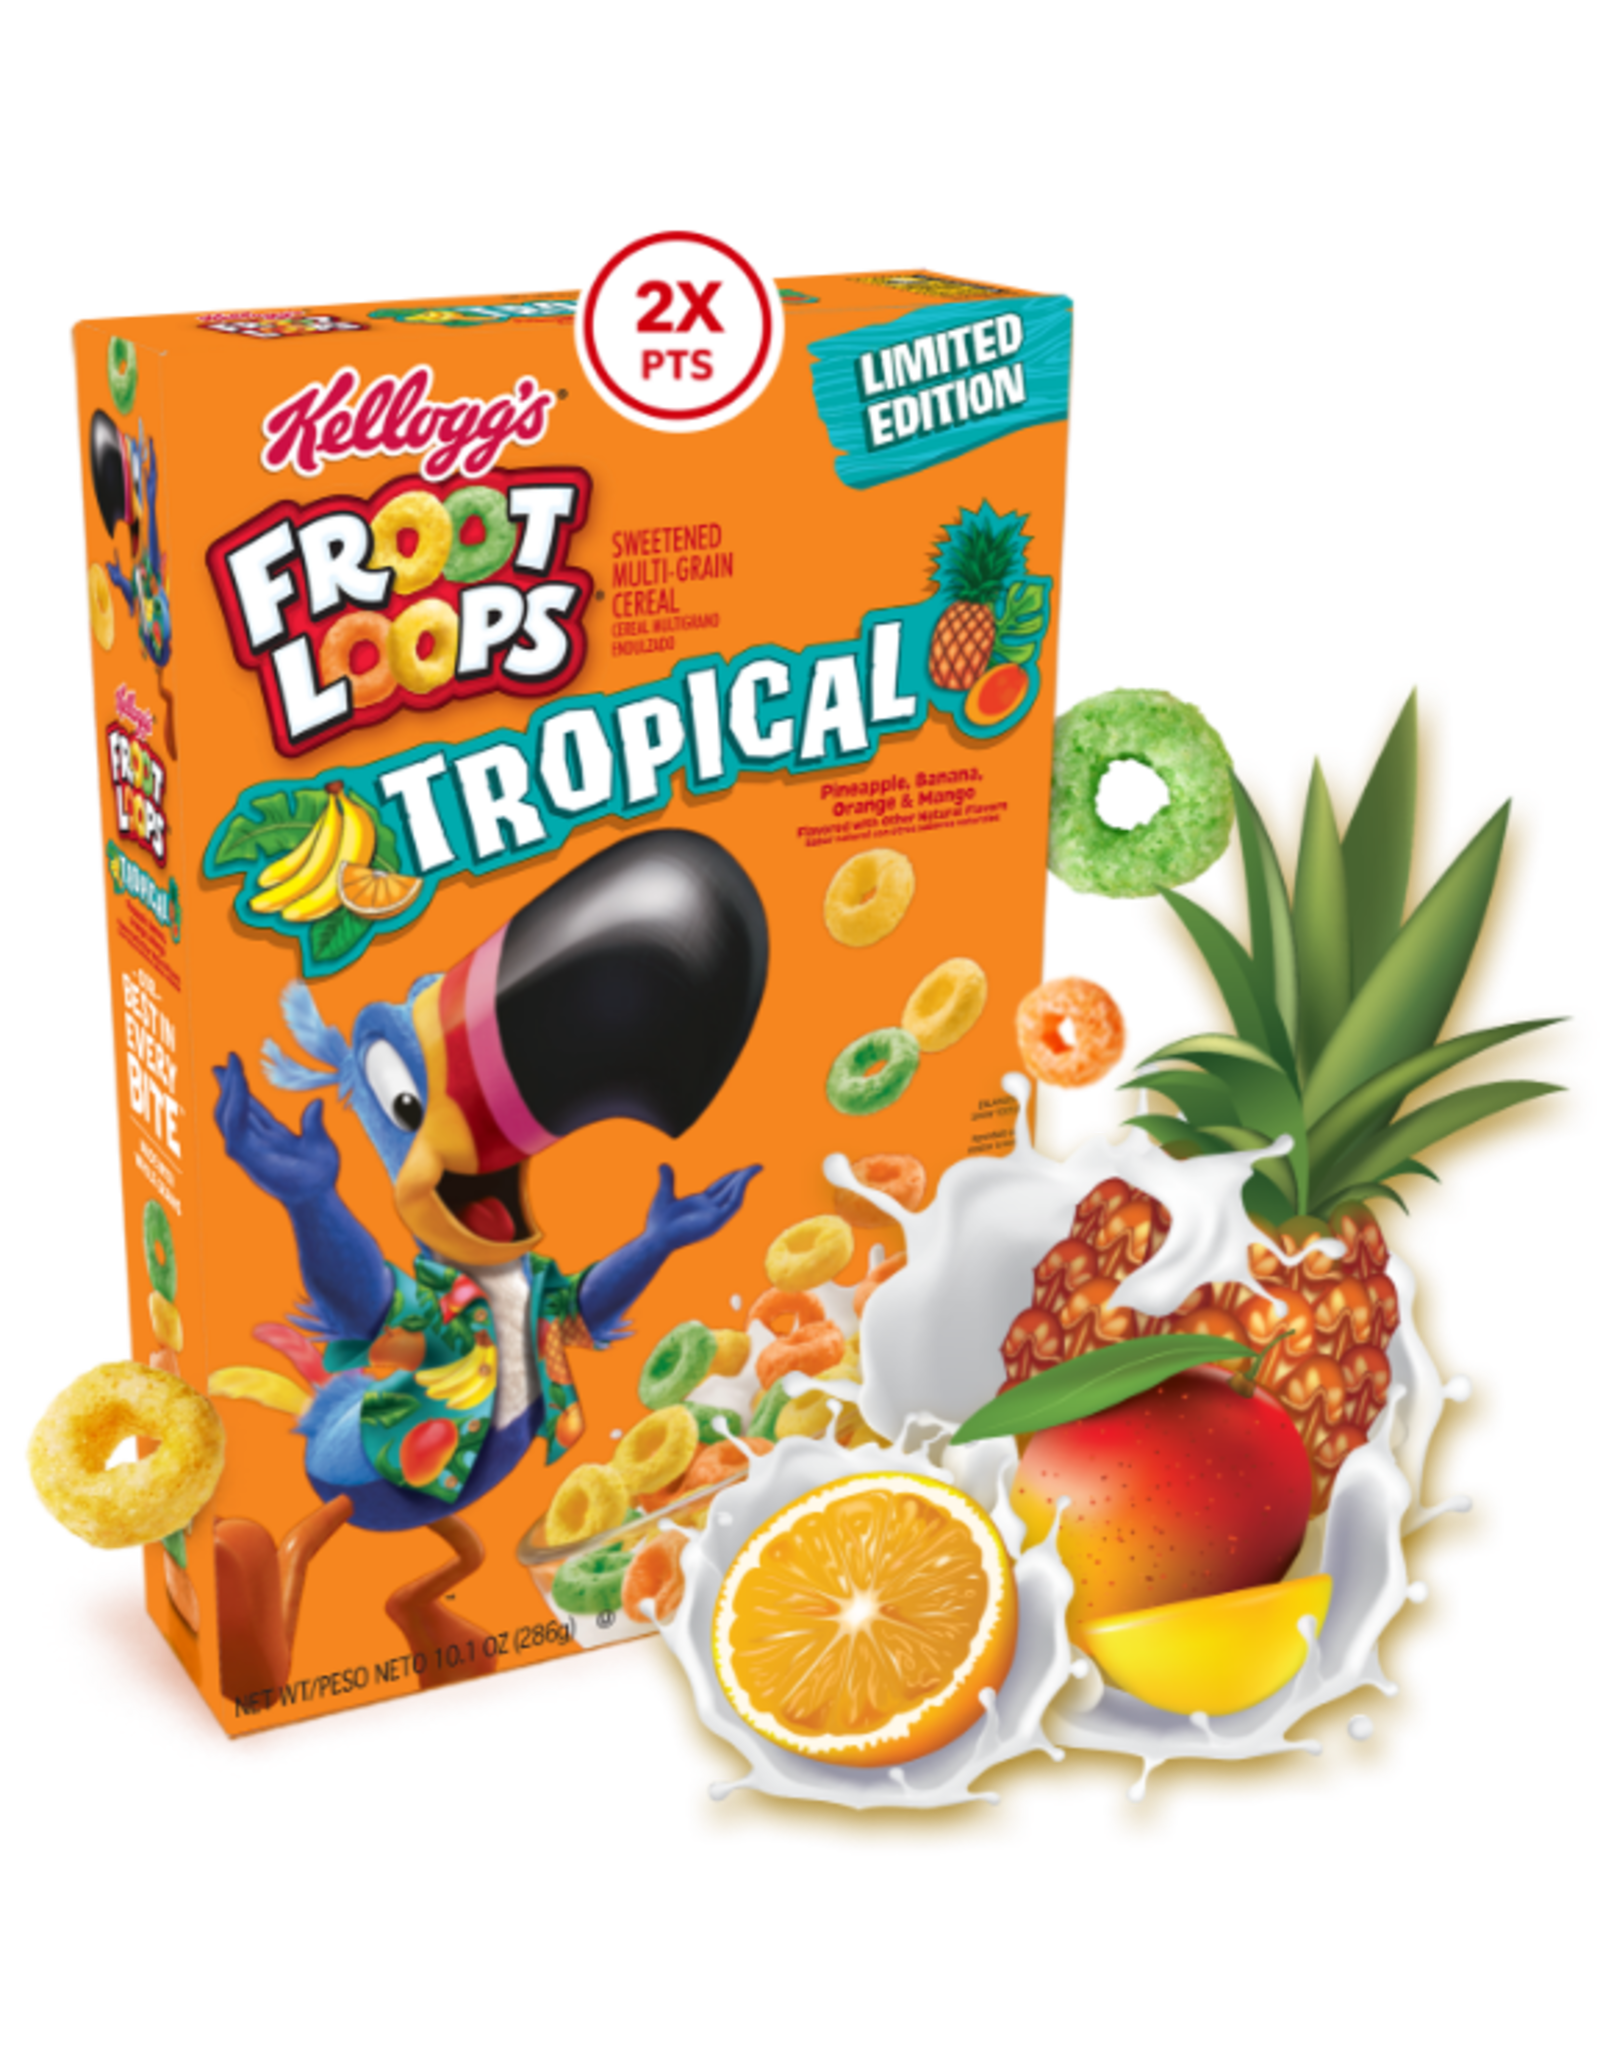 Froot Loops Tropical - 286g - BBD: 2/06/2021